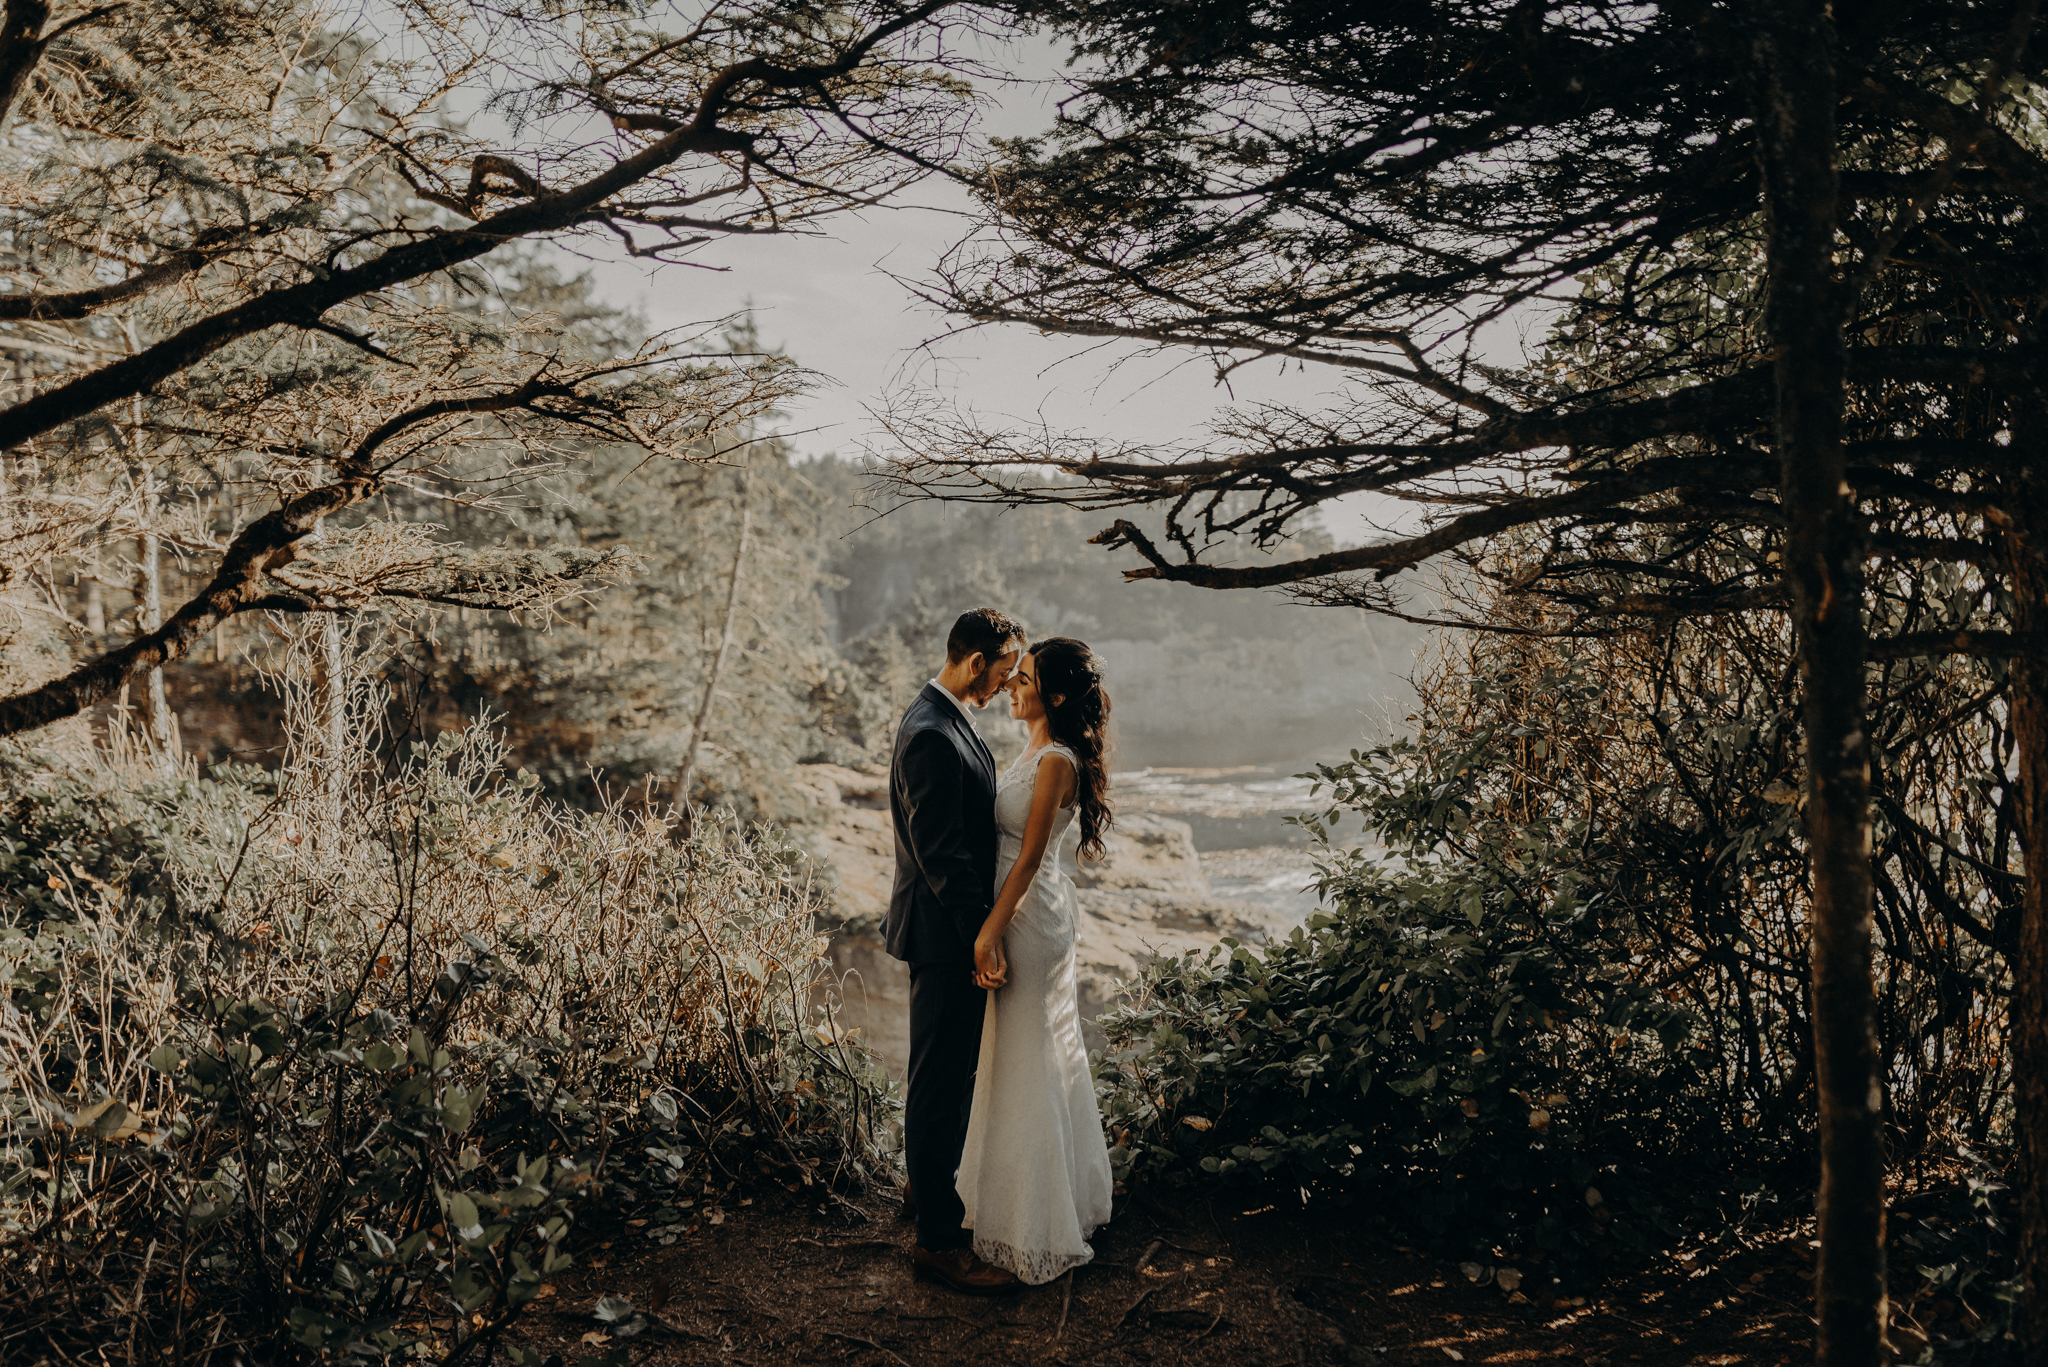 Isaiah + Taylor Photography - Cape Flattery Elopement, Olympia National Forest Wedding Photographer-080.jpg